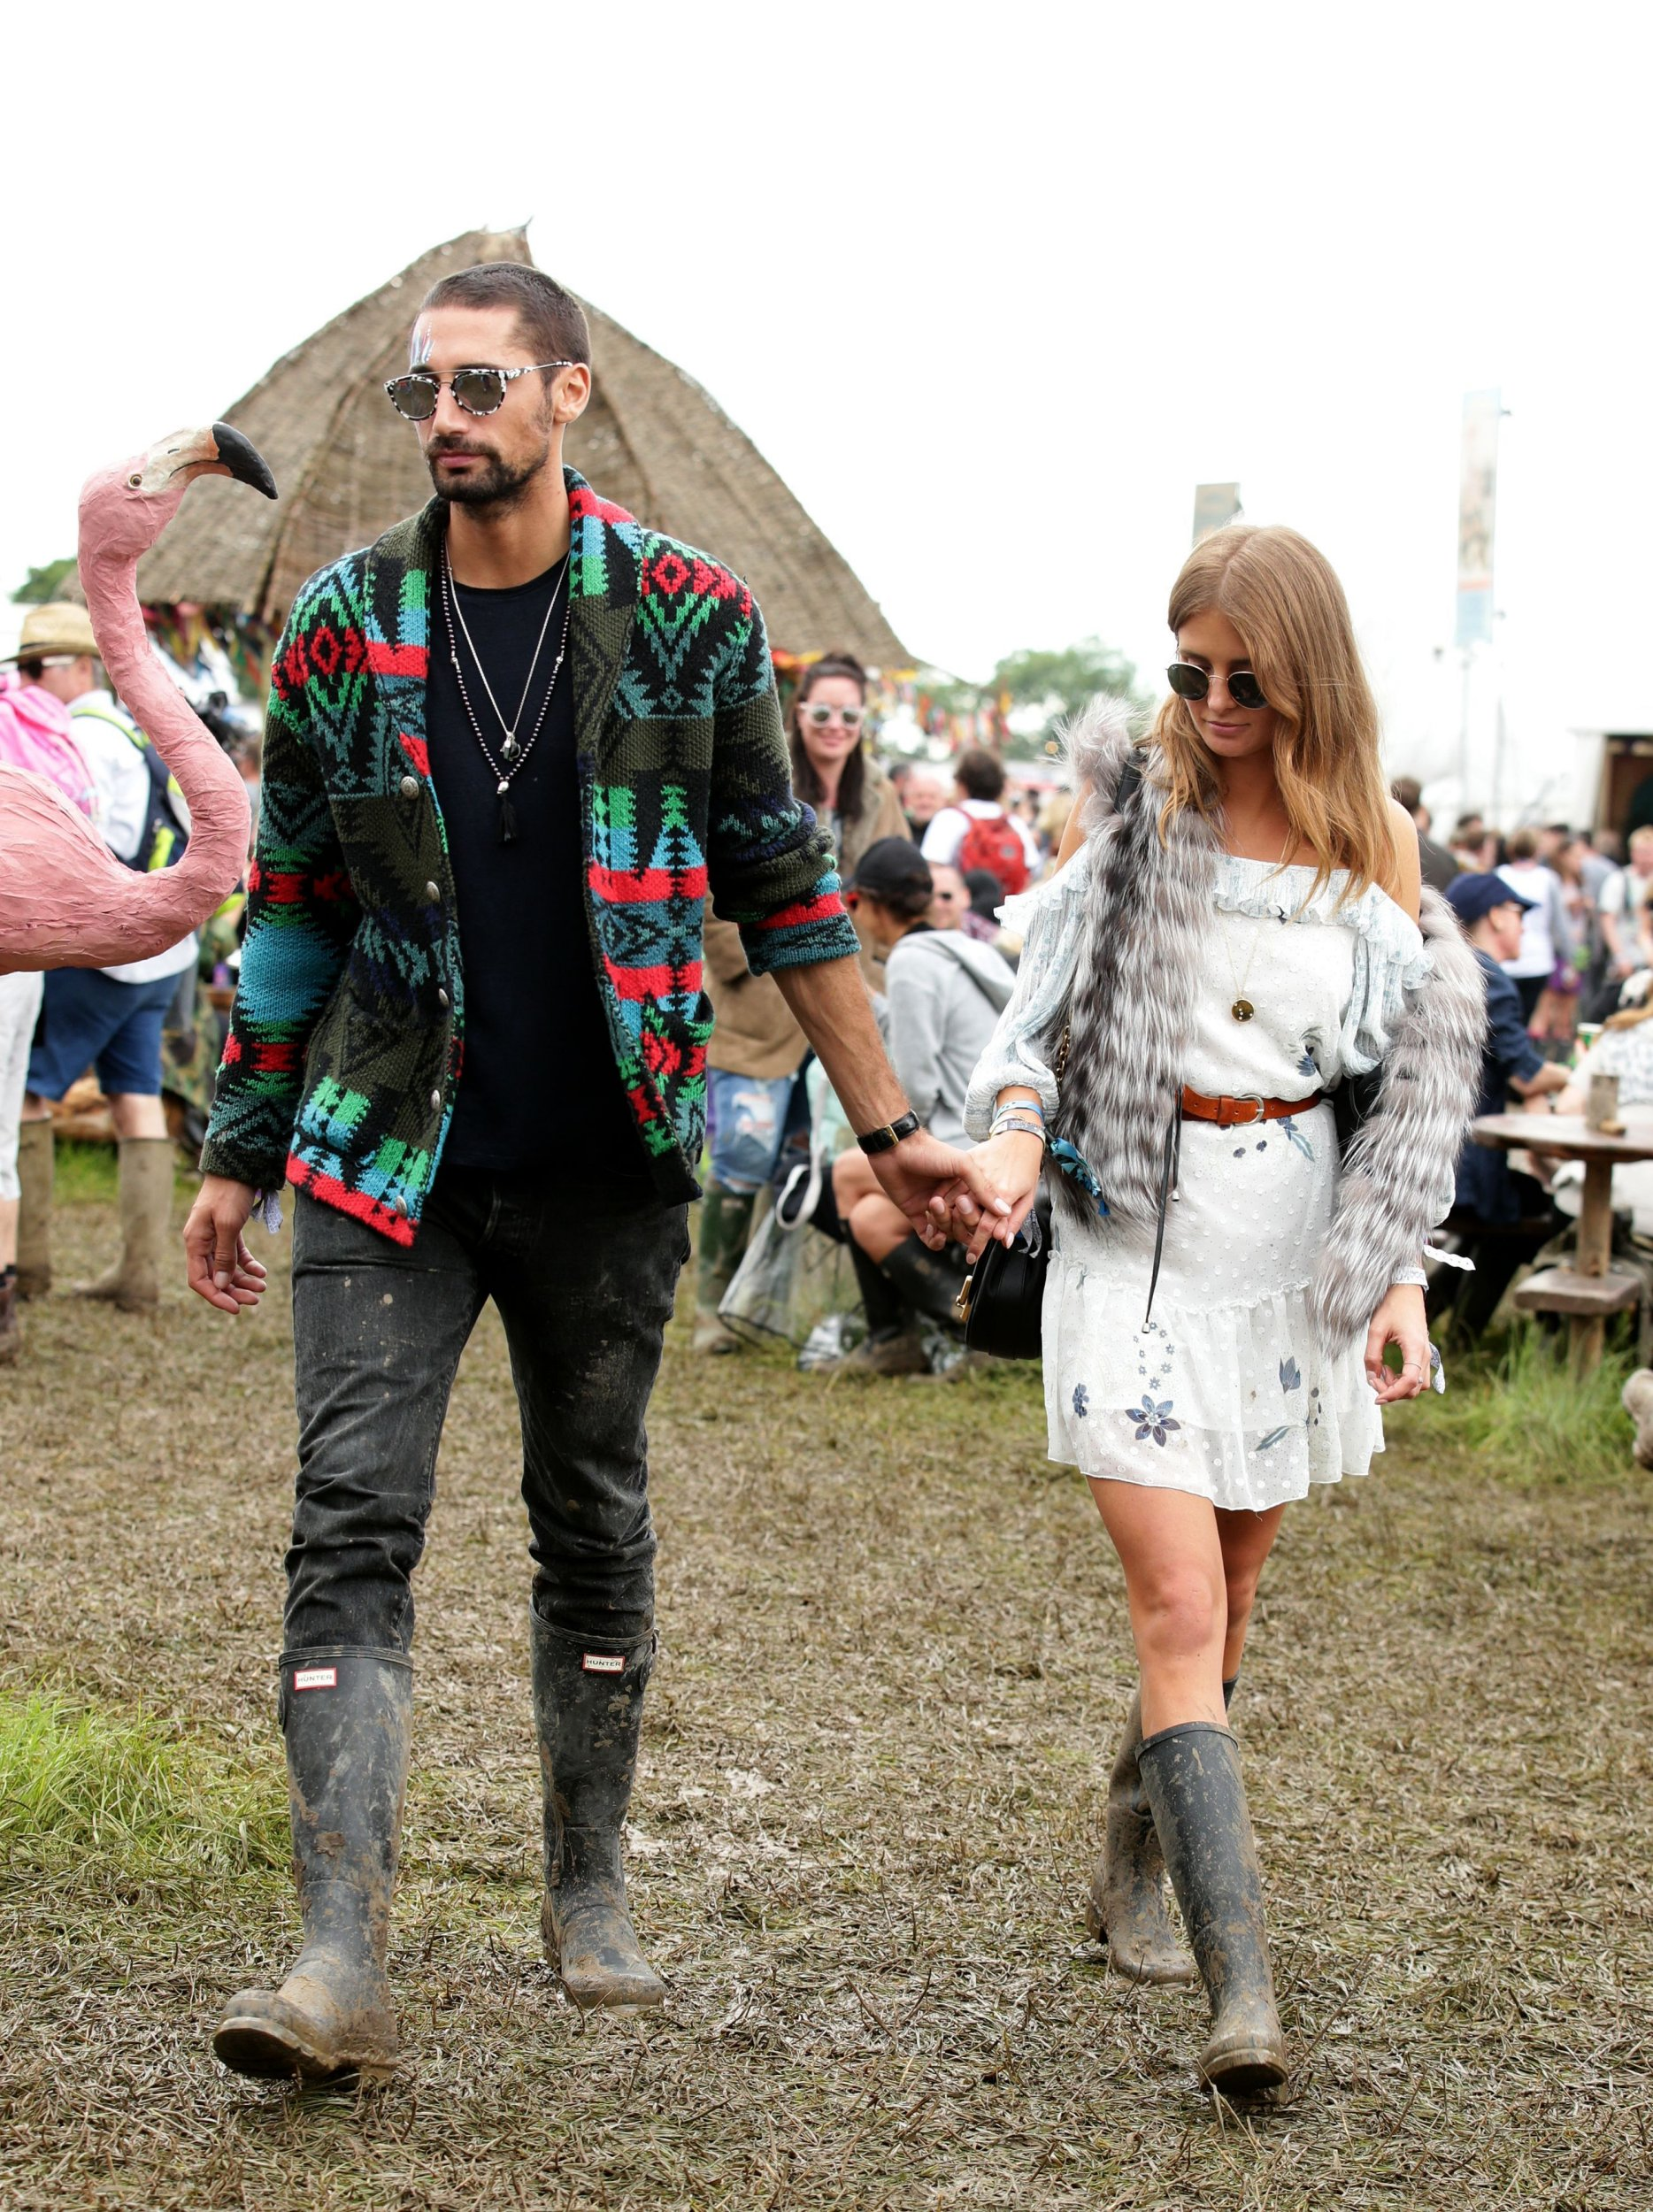 Hugo Taylor and Millie Mackintosh are seen backstage at the Glastonbury Festival, at Worthy Farm in Somerset. PRESS ASSOCIATION Photo. See PA story SHOWBIZ Glastonbury. Picture date: Friday June 24, 2016. Photo credit should read: Yui Mok/PA Wire